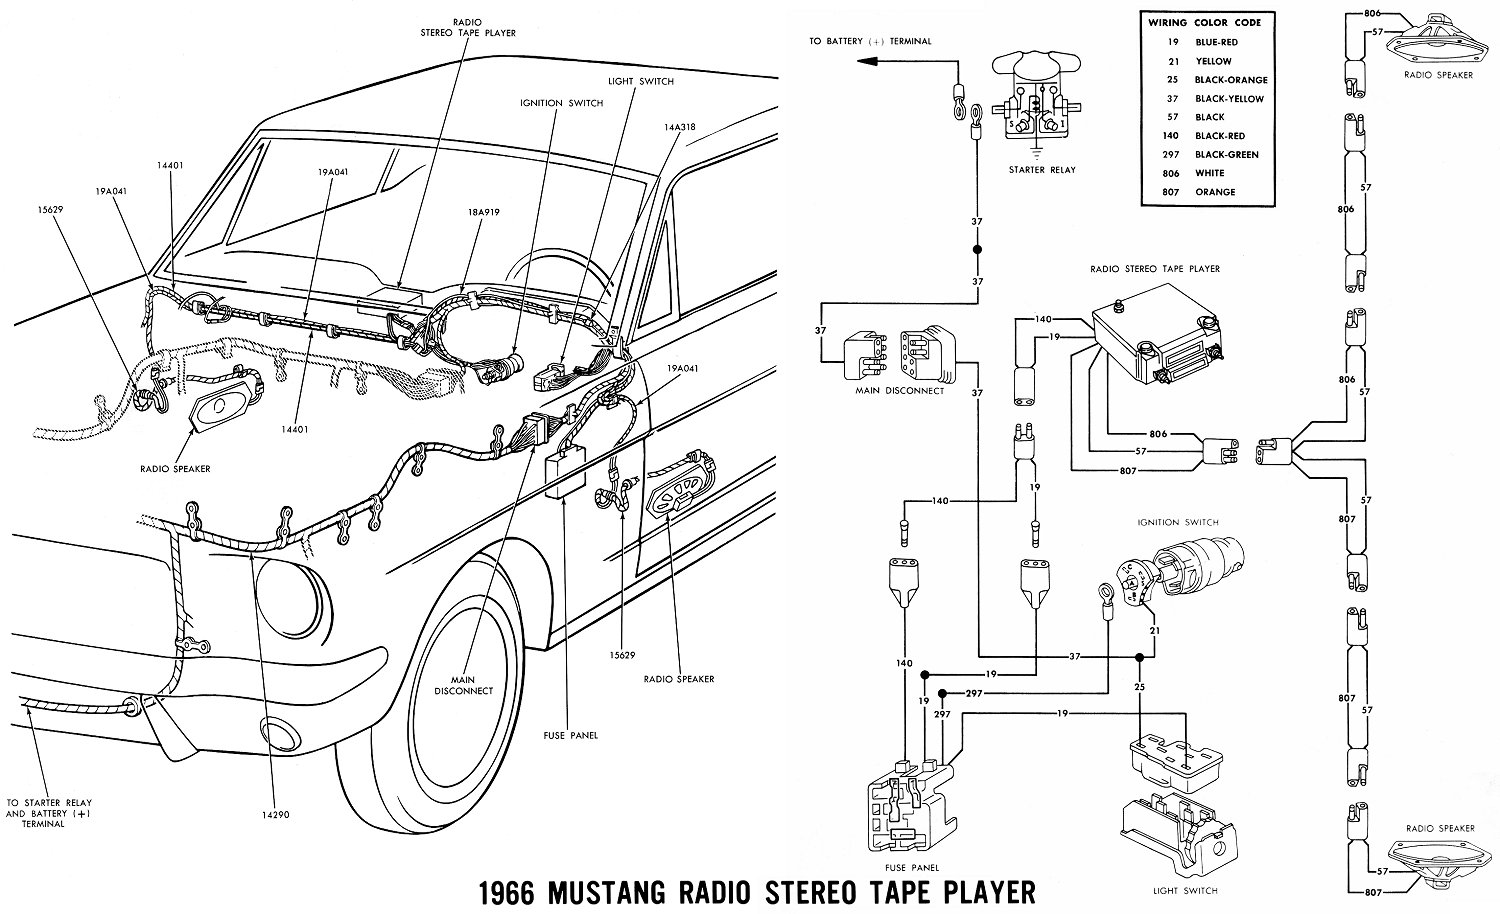 1966 Mustang Lighting Wiring Diagram Not Lossing On 1965 Ford Under Dash Harness With Diagrams Average Joe Restoration Rh Averagejoerestoration Com